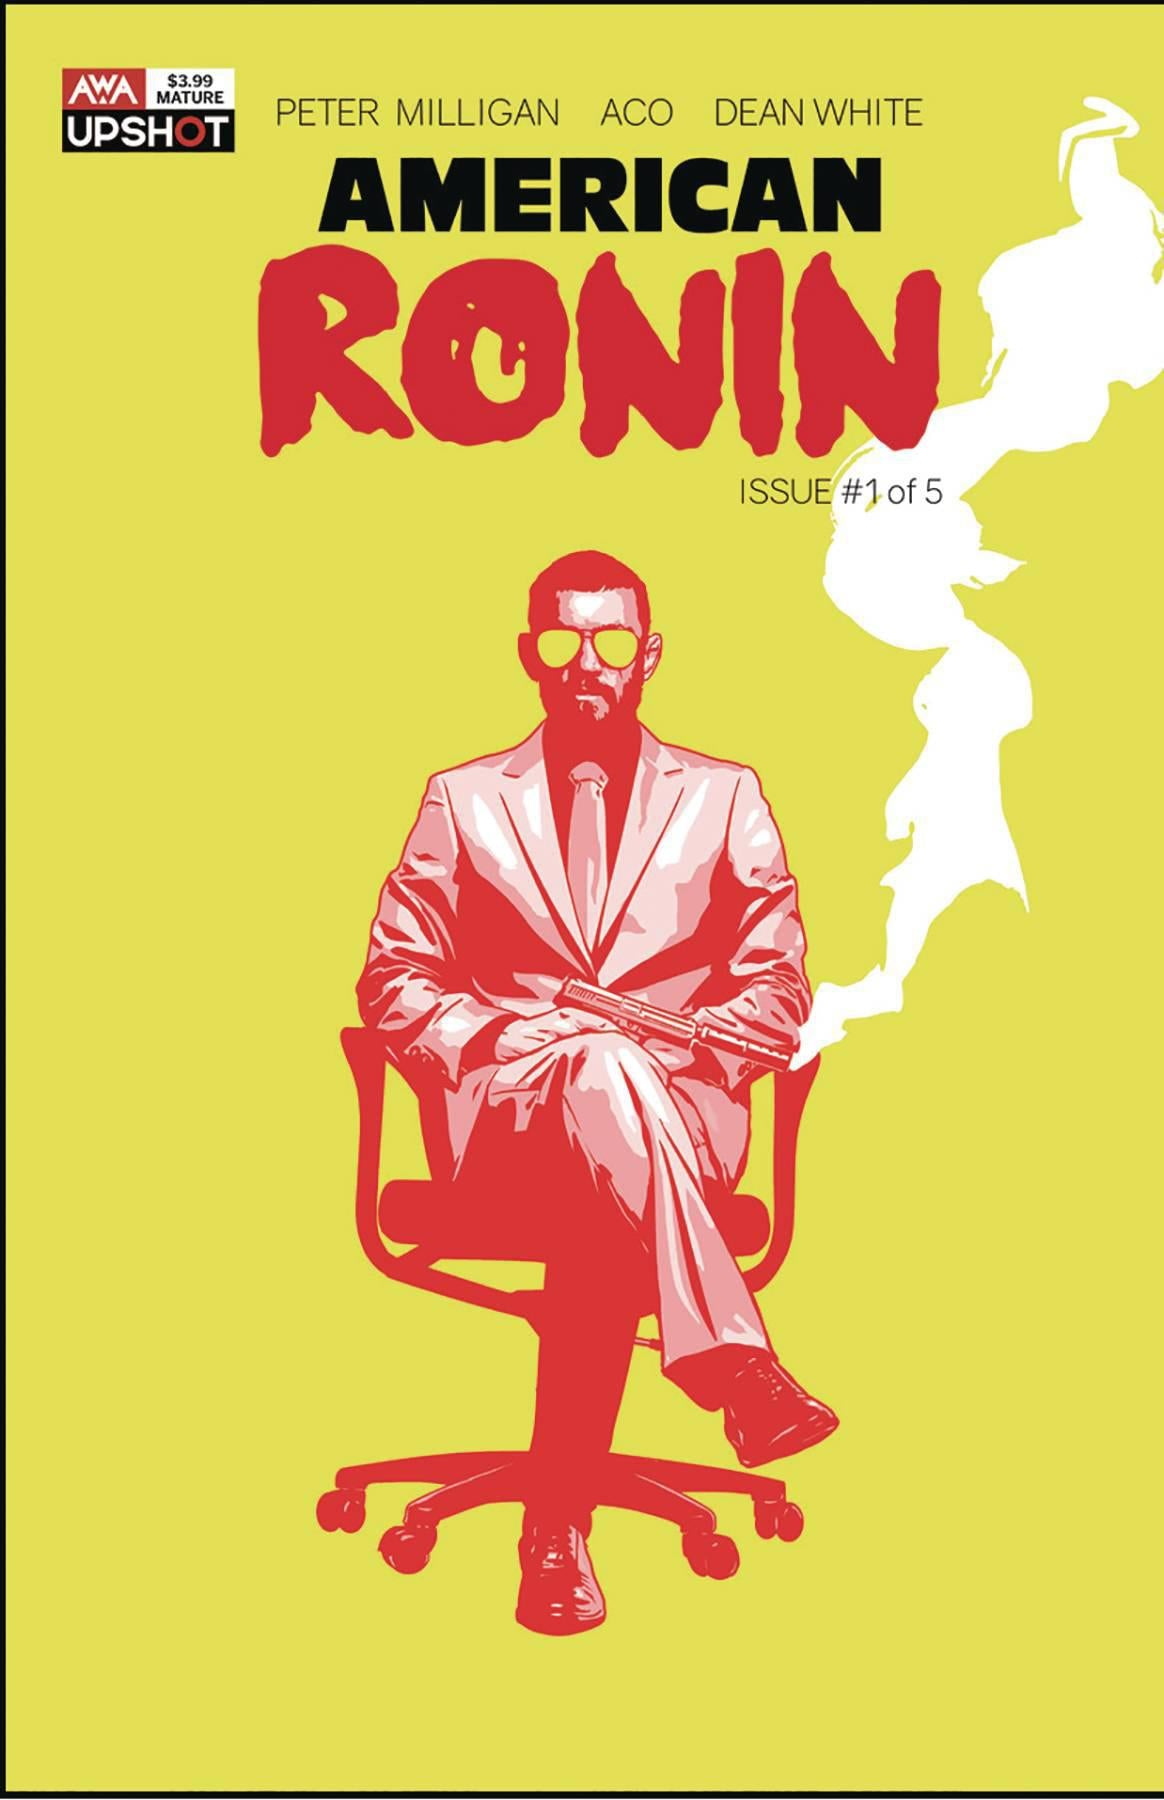 AMERICAN RONIN #1 (OF 5) COVER A ACO